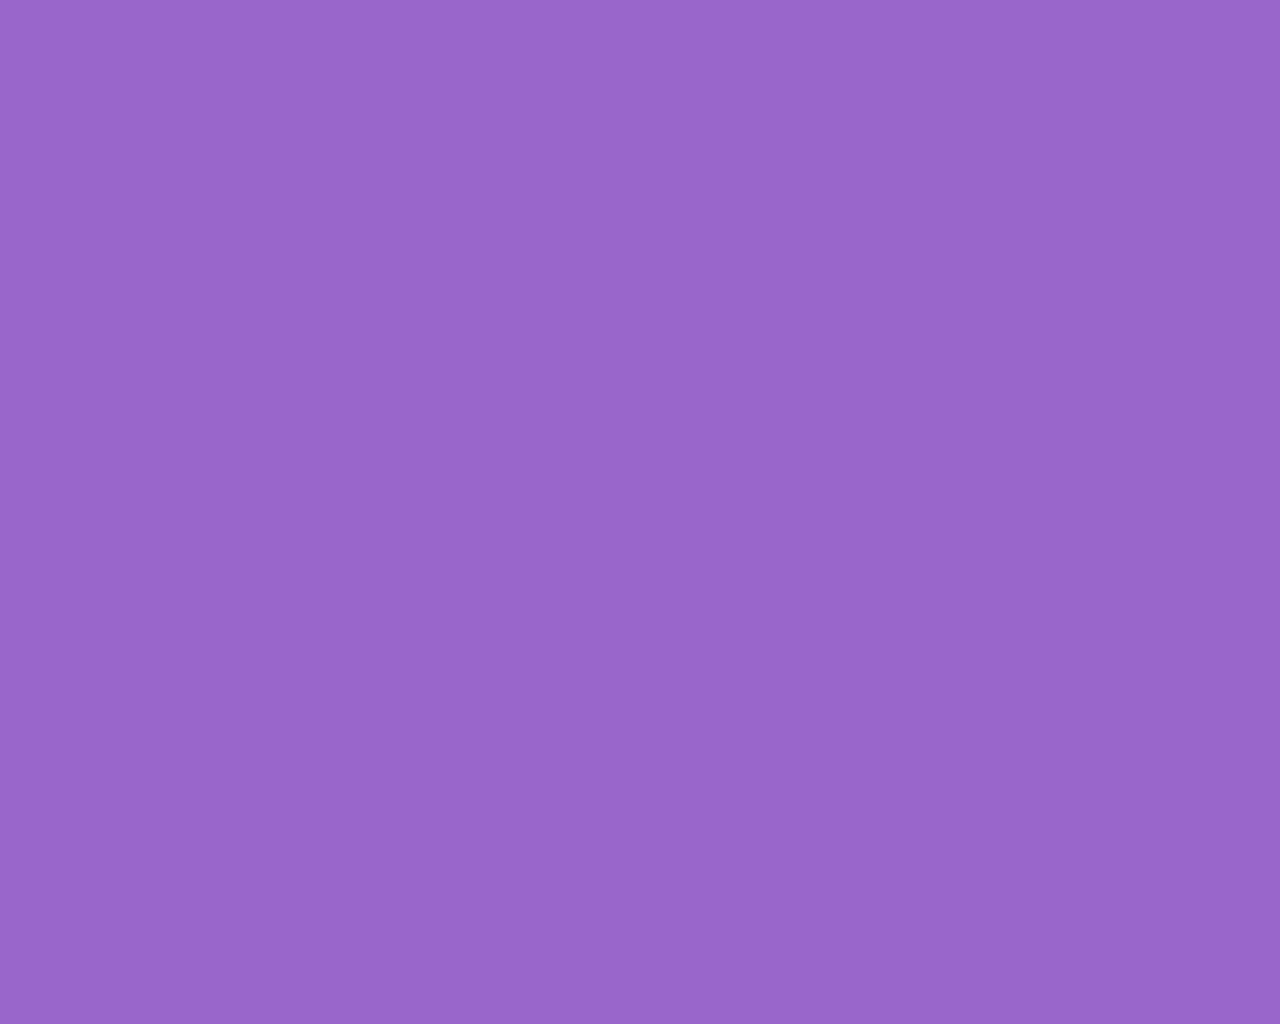 1280x1024 Amethyst Solid Color Background